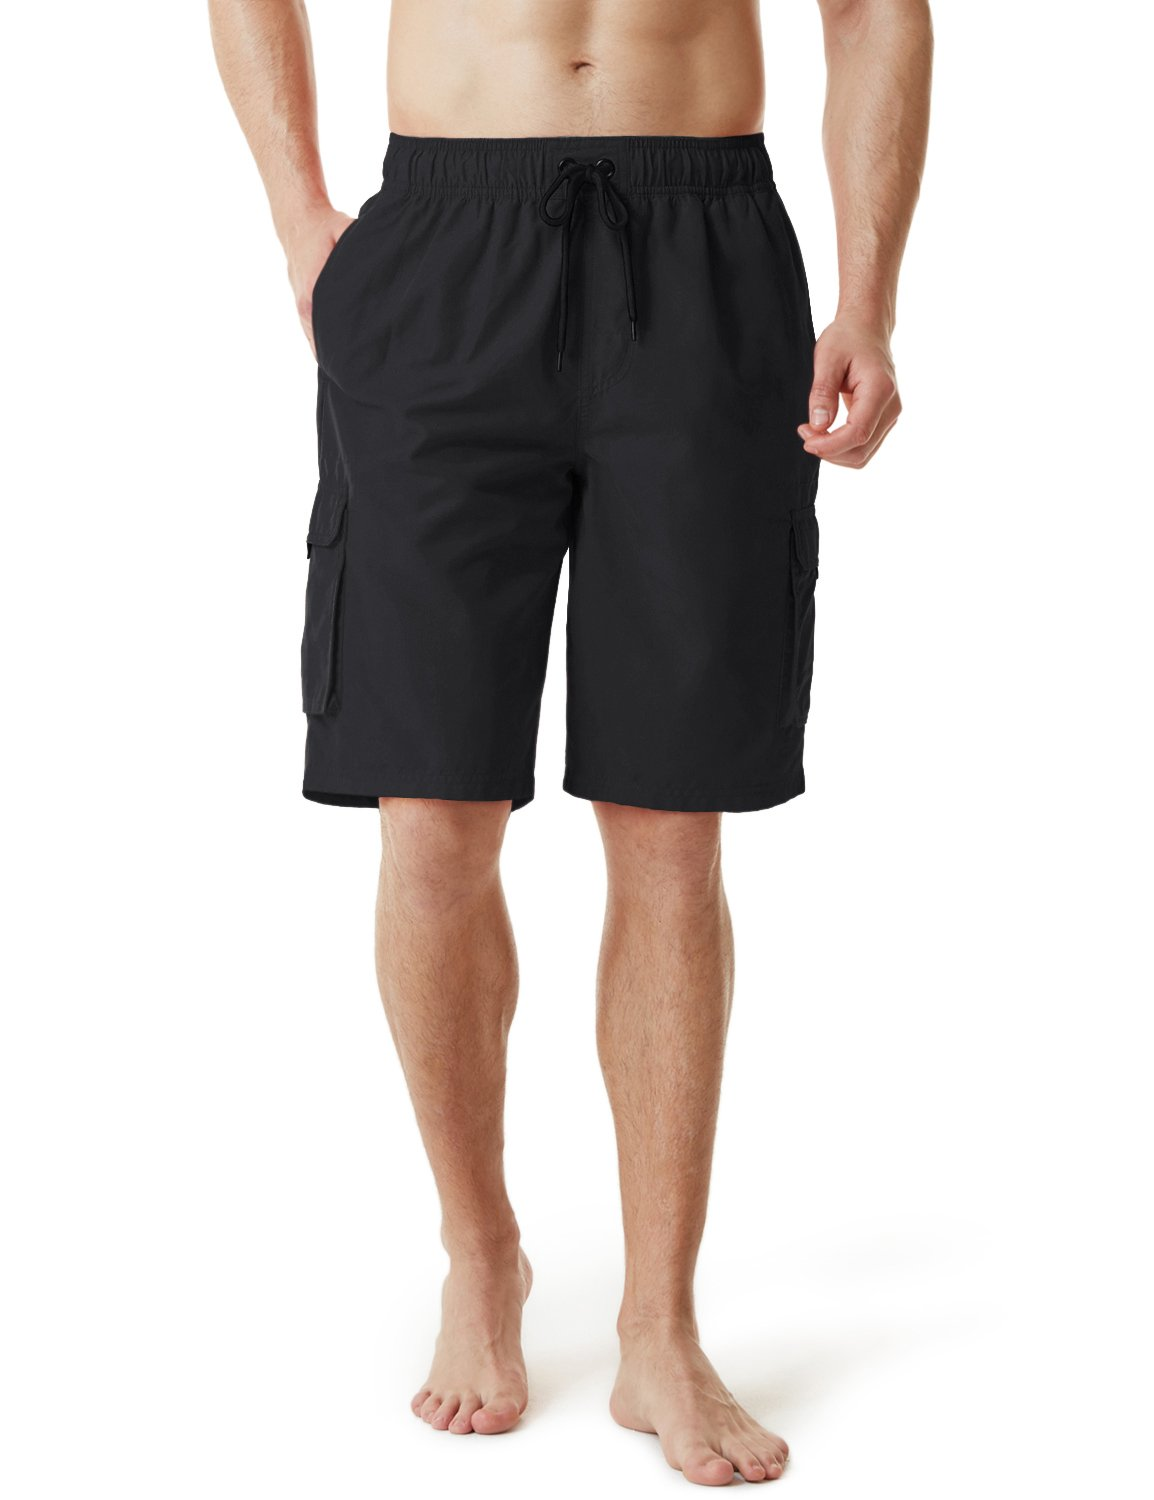 Tesla TM-MSB01-BLK_Medium Men's SwimTrunks Quick Dry Water Beach MSB01